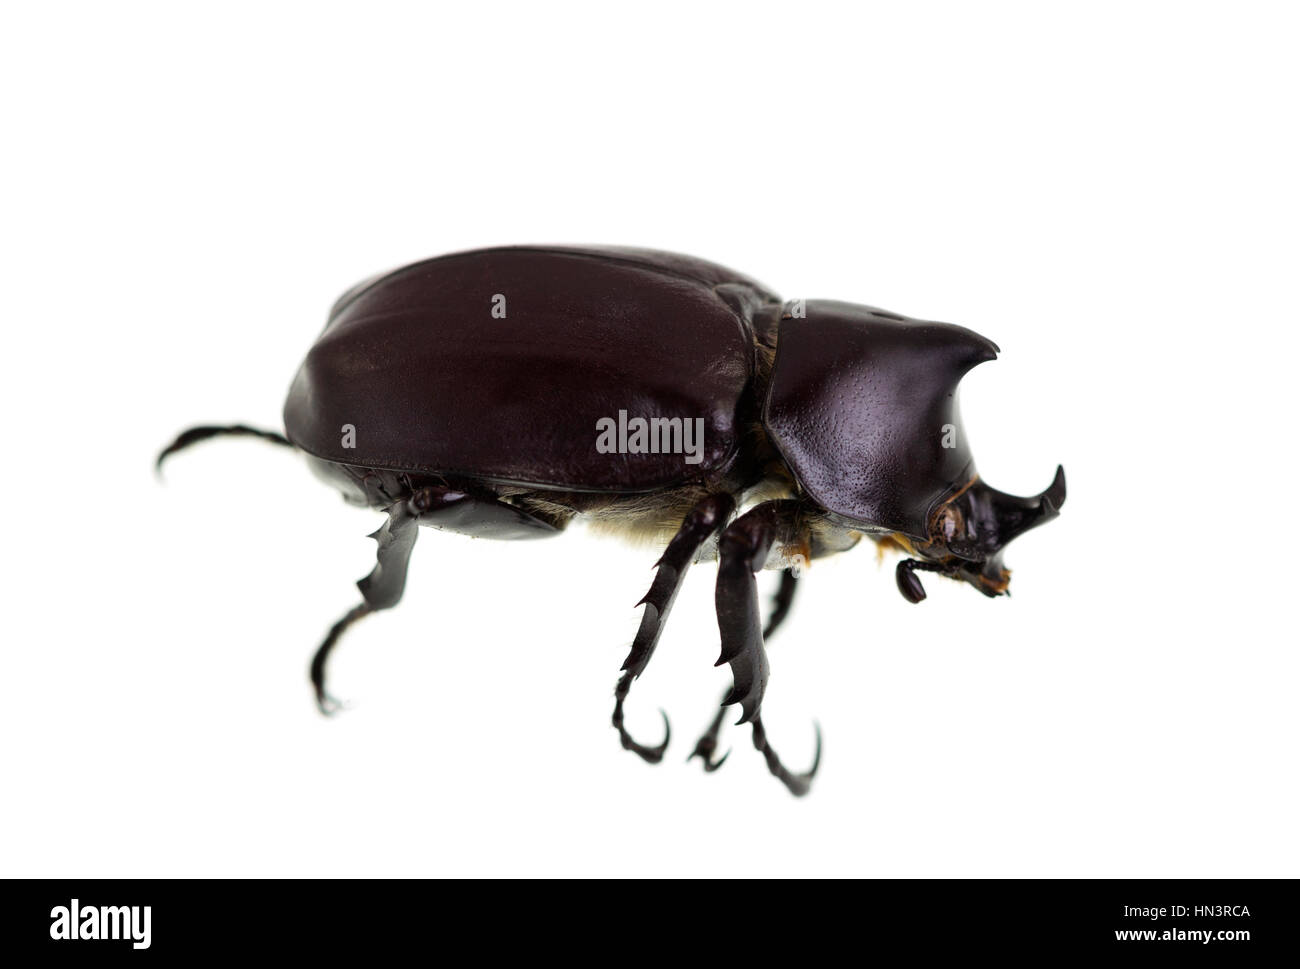 The Male Rhinoceros Beetle, also called Xylotrupes Ulysses, is an insect that lives on decaying vegetable matter. - Stock Image